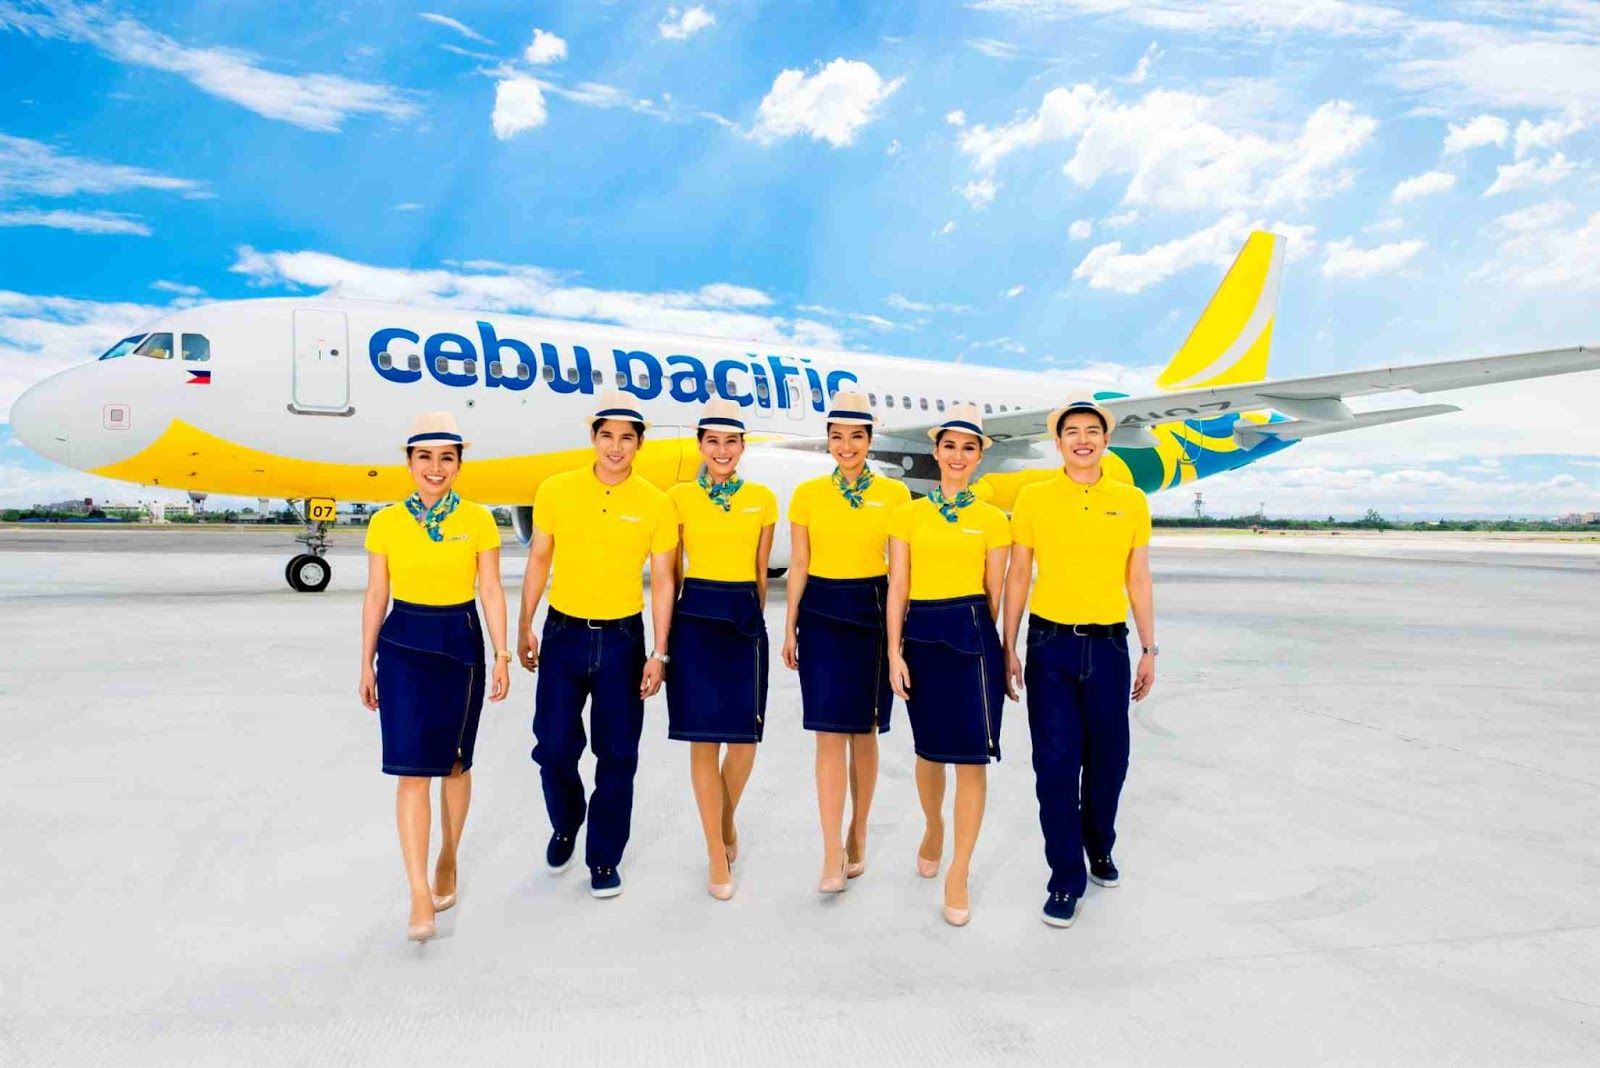 Cebu Pacific Cabin Crew Sporting Their New Uniform And Livery Photo By Air